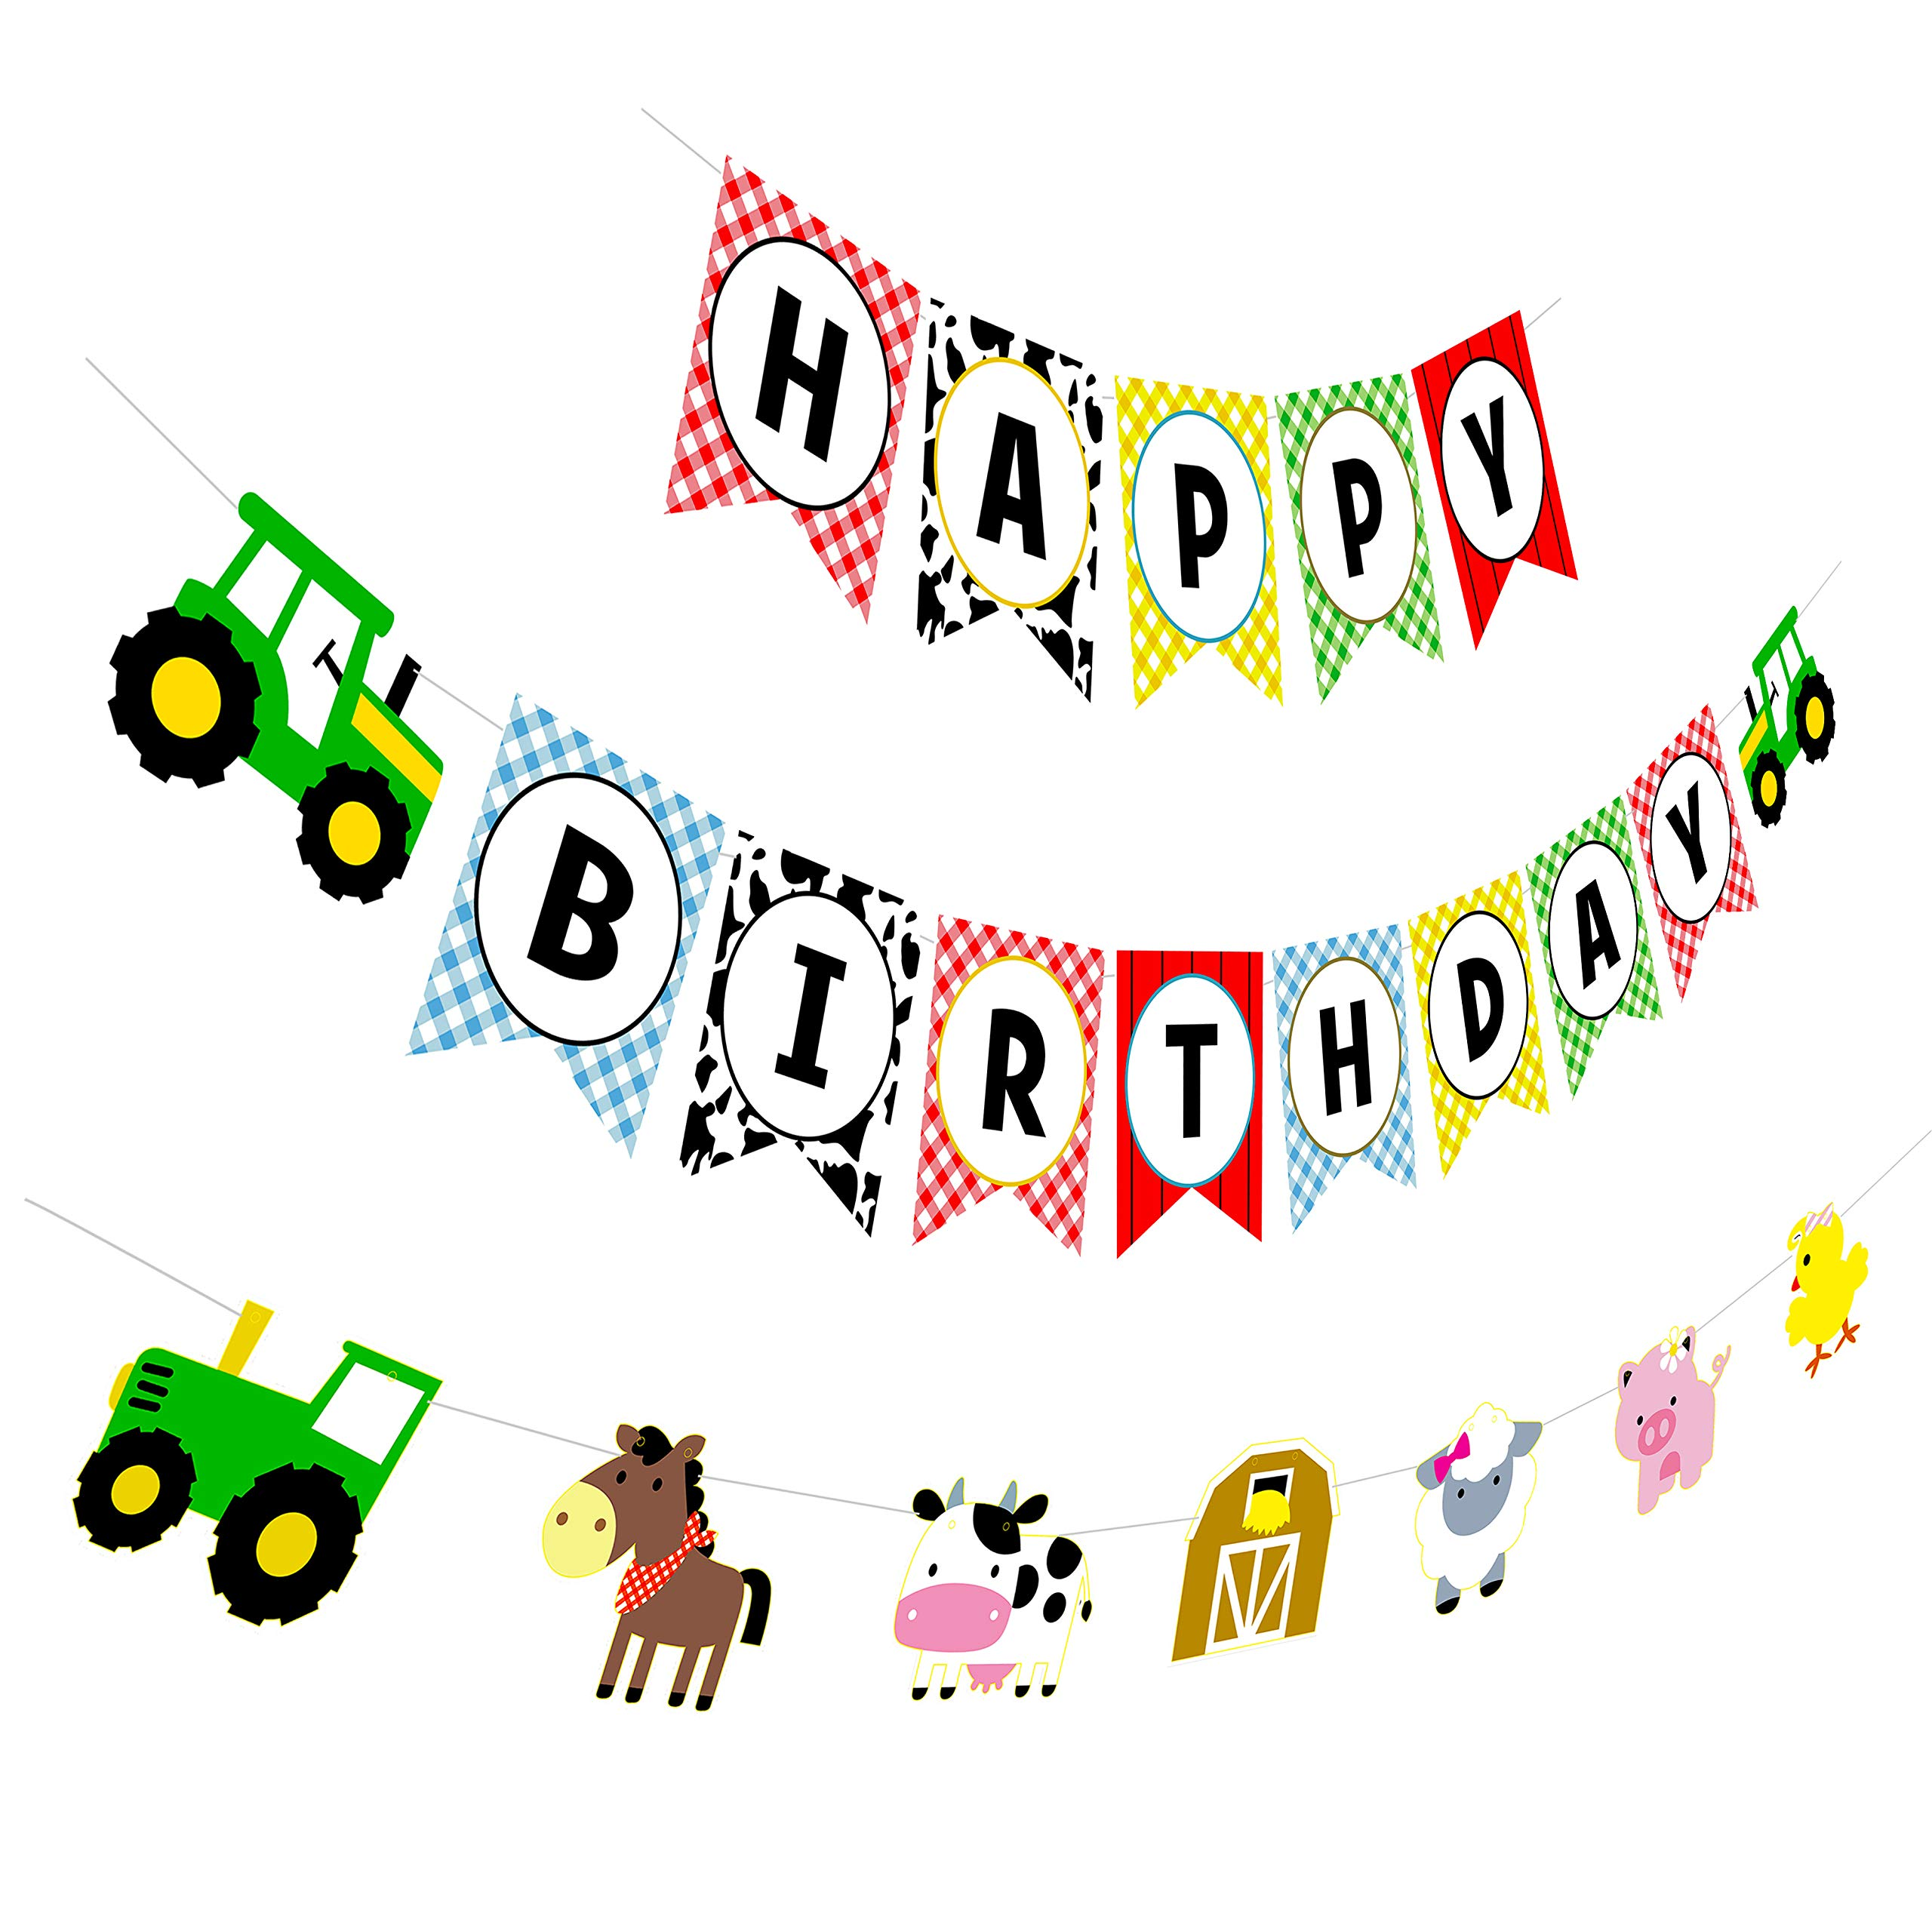 2b9dfe0f0 Farm Birthday Banner, Tractor Happy Birthday Sign with Animal Garland,  Rustic Bday Party Decorations